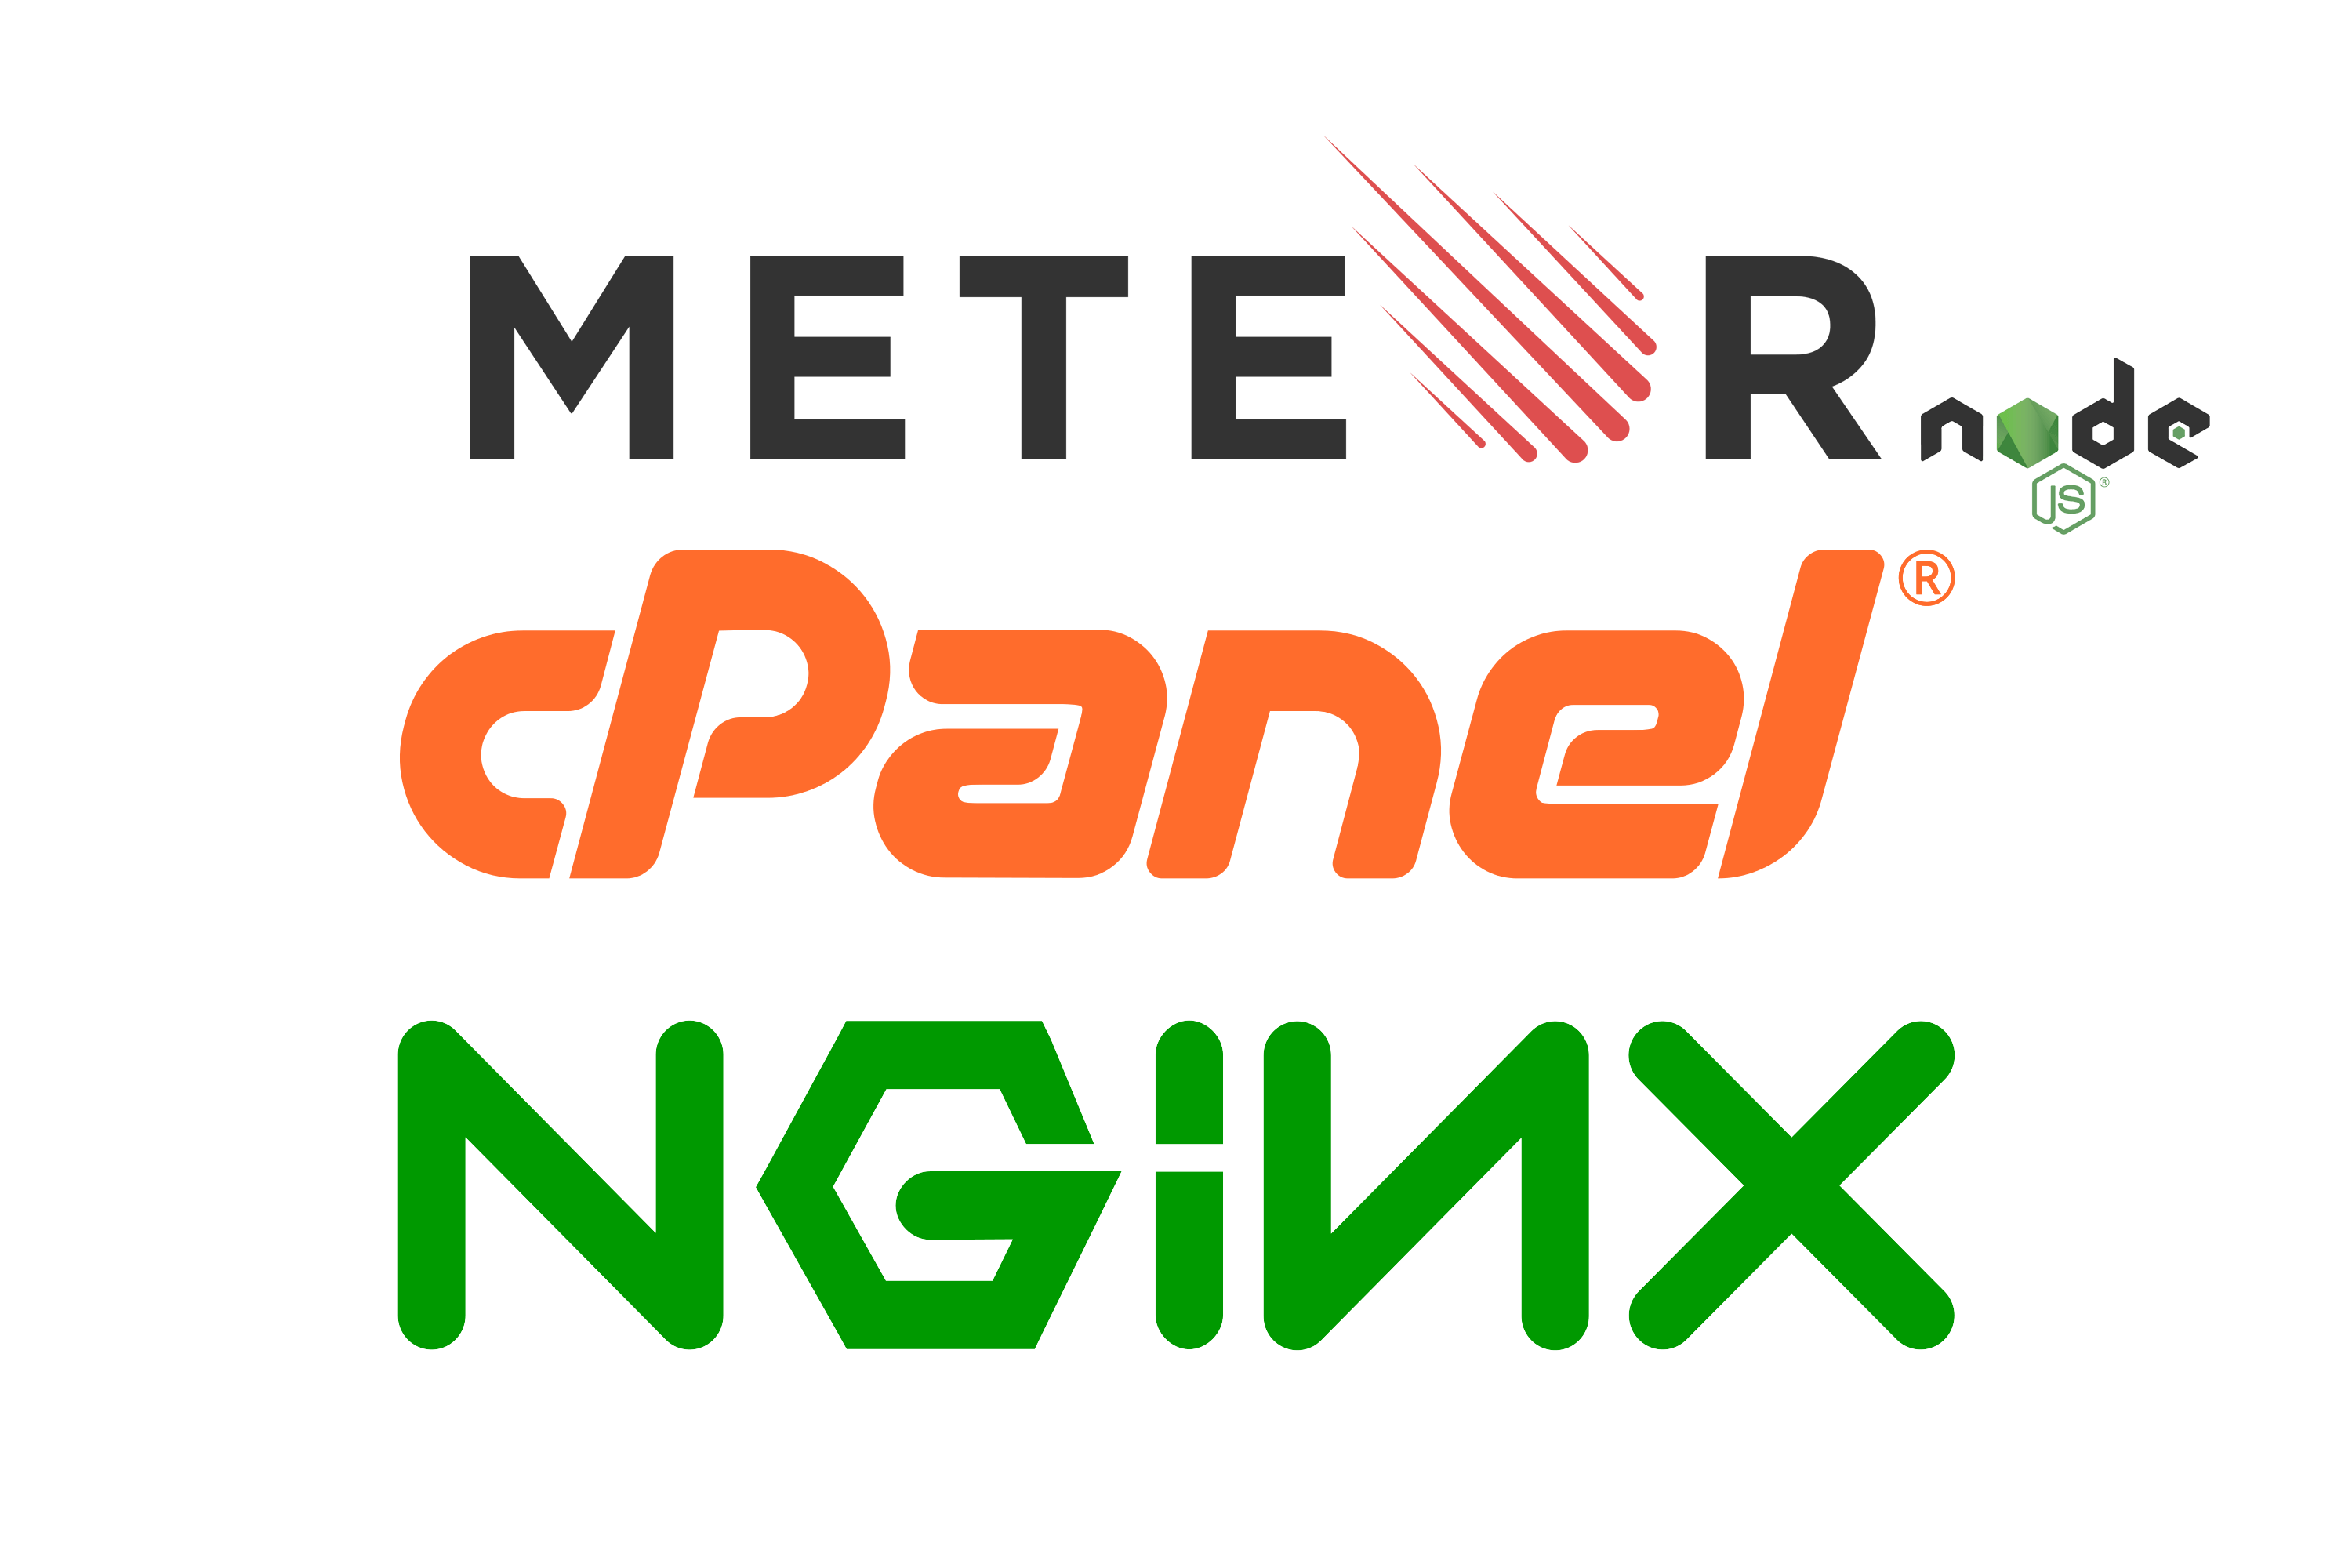 Deploying Node JS or Meteor app on cPanel, WHM based